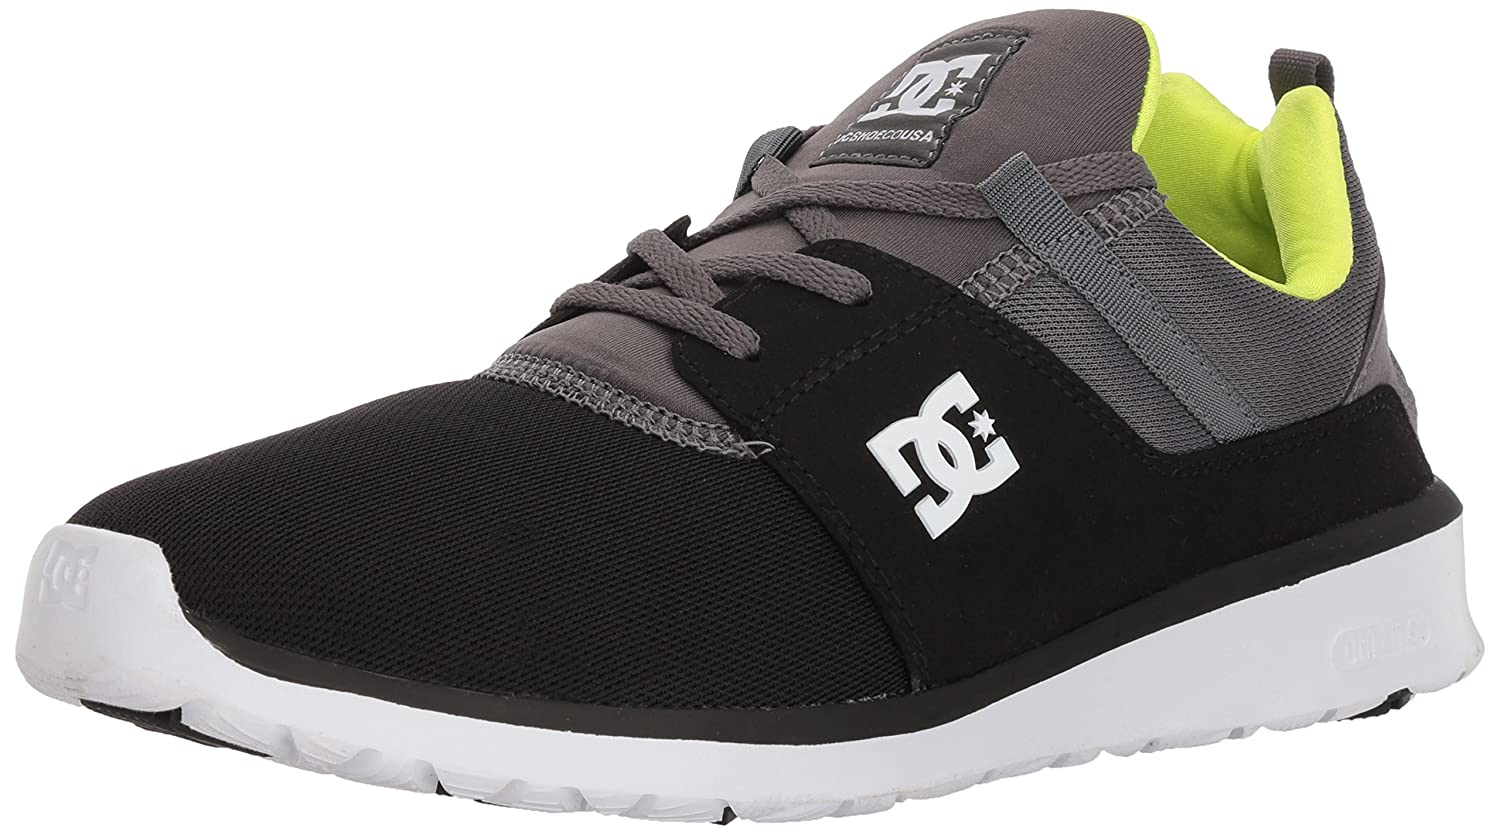 DC Men's Heathrow Casual Skate Shoe B07597K5WB 6.5 D D US|Black/Battleship/Lime